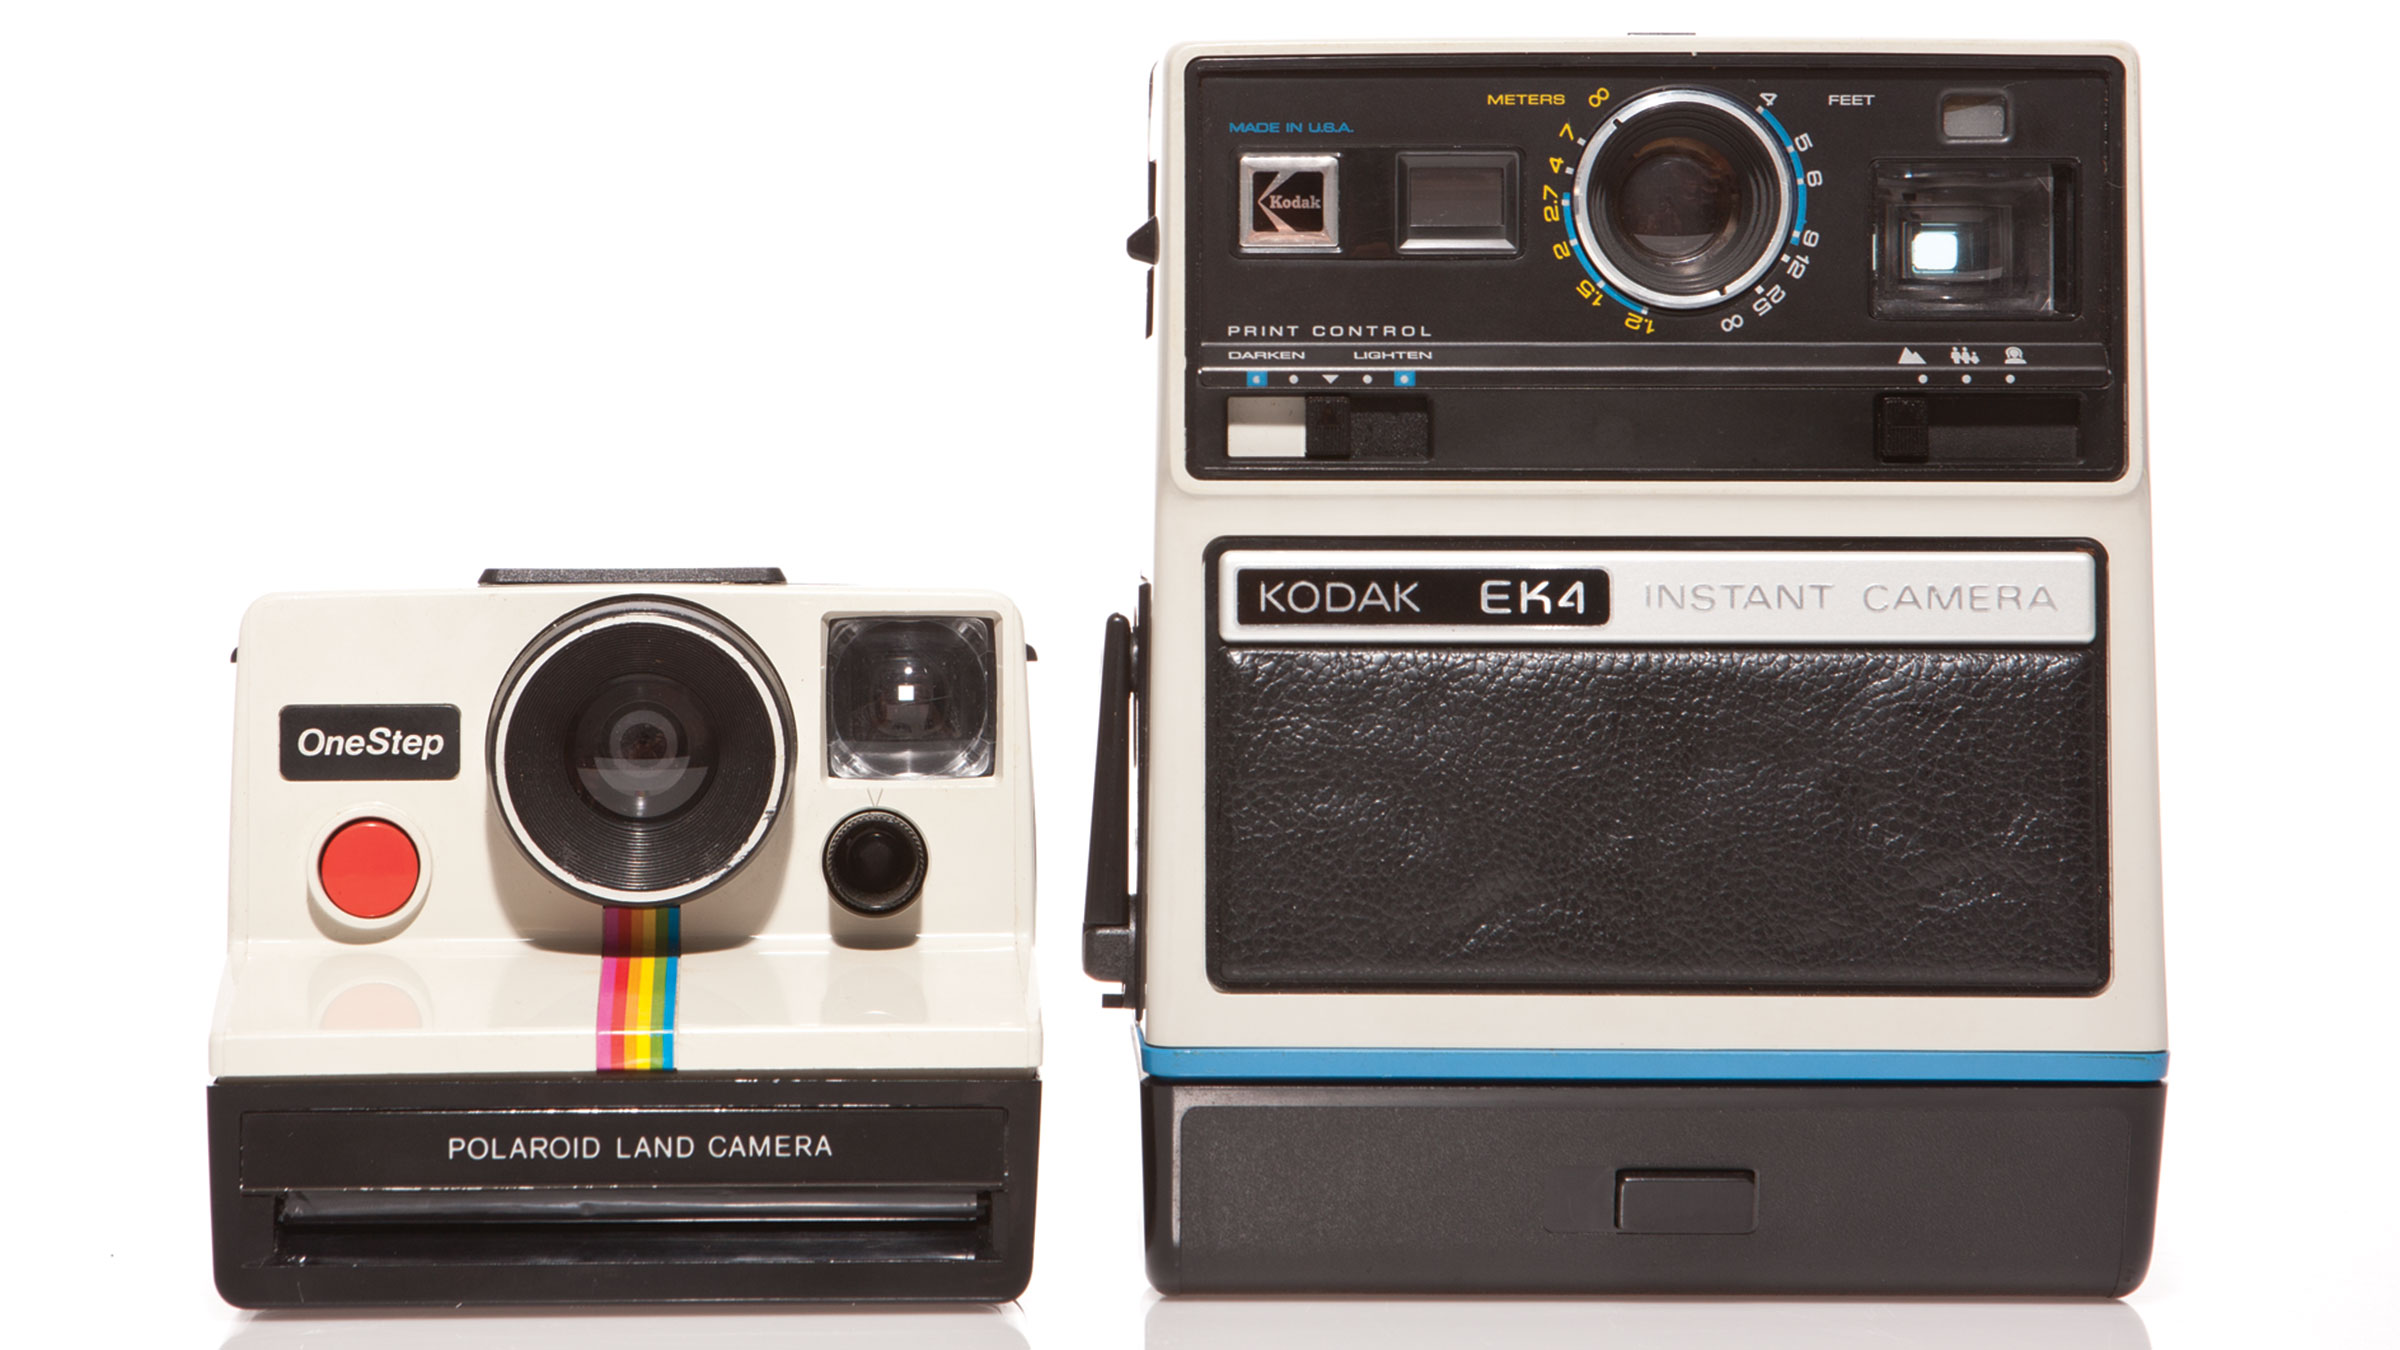 The competing camera lines from Polaroid and Kodak